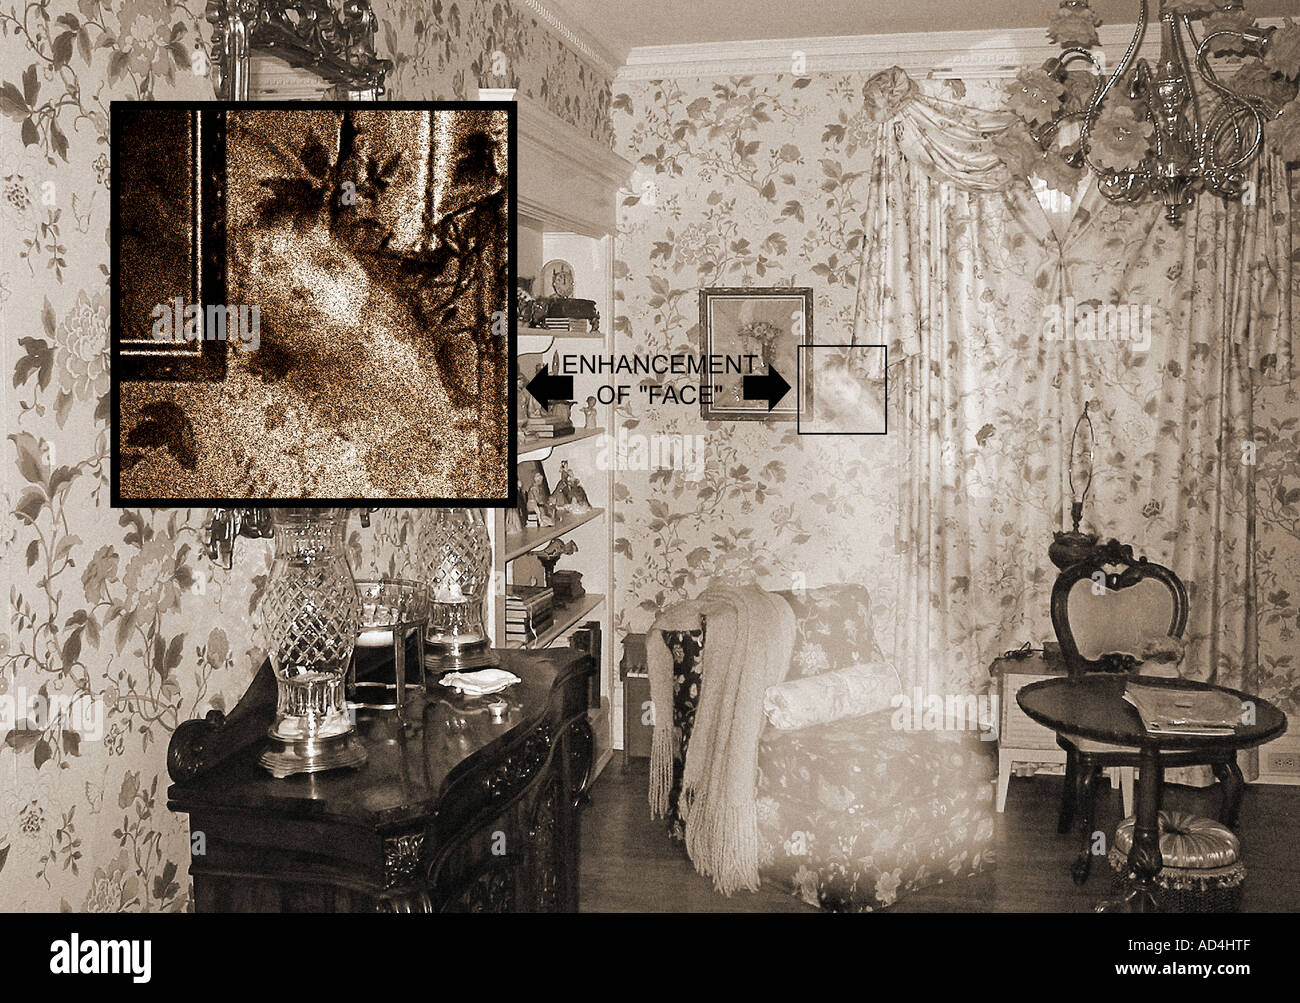 Seated Ghost in Parlor (Enhanced) - Stock Image